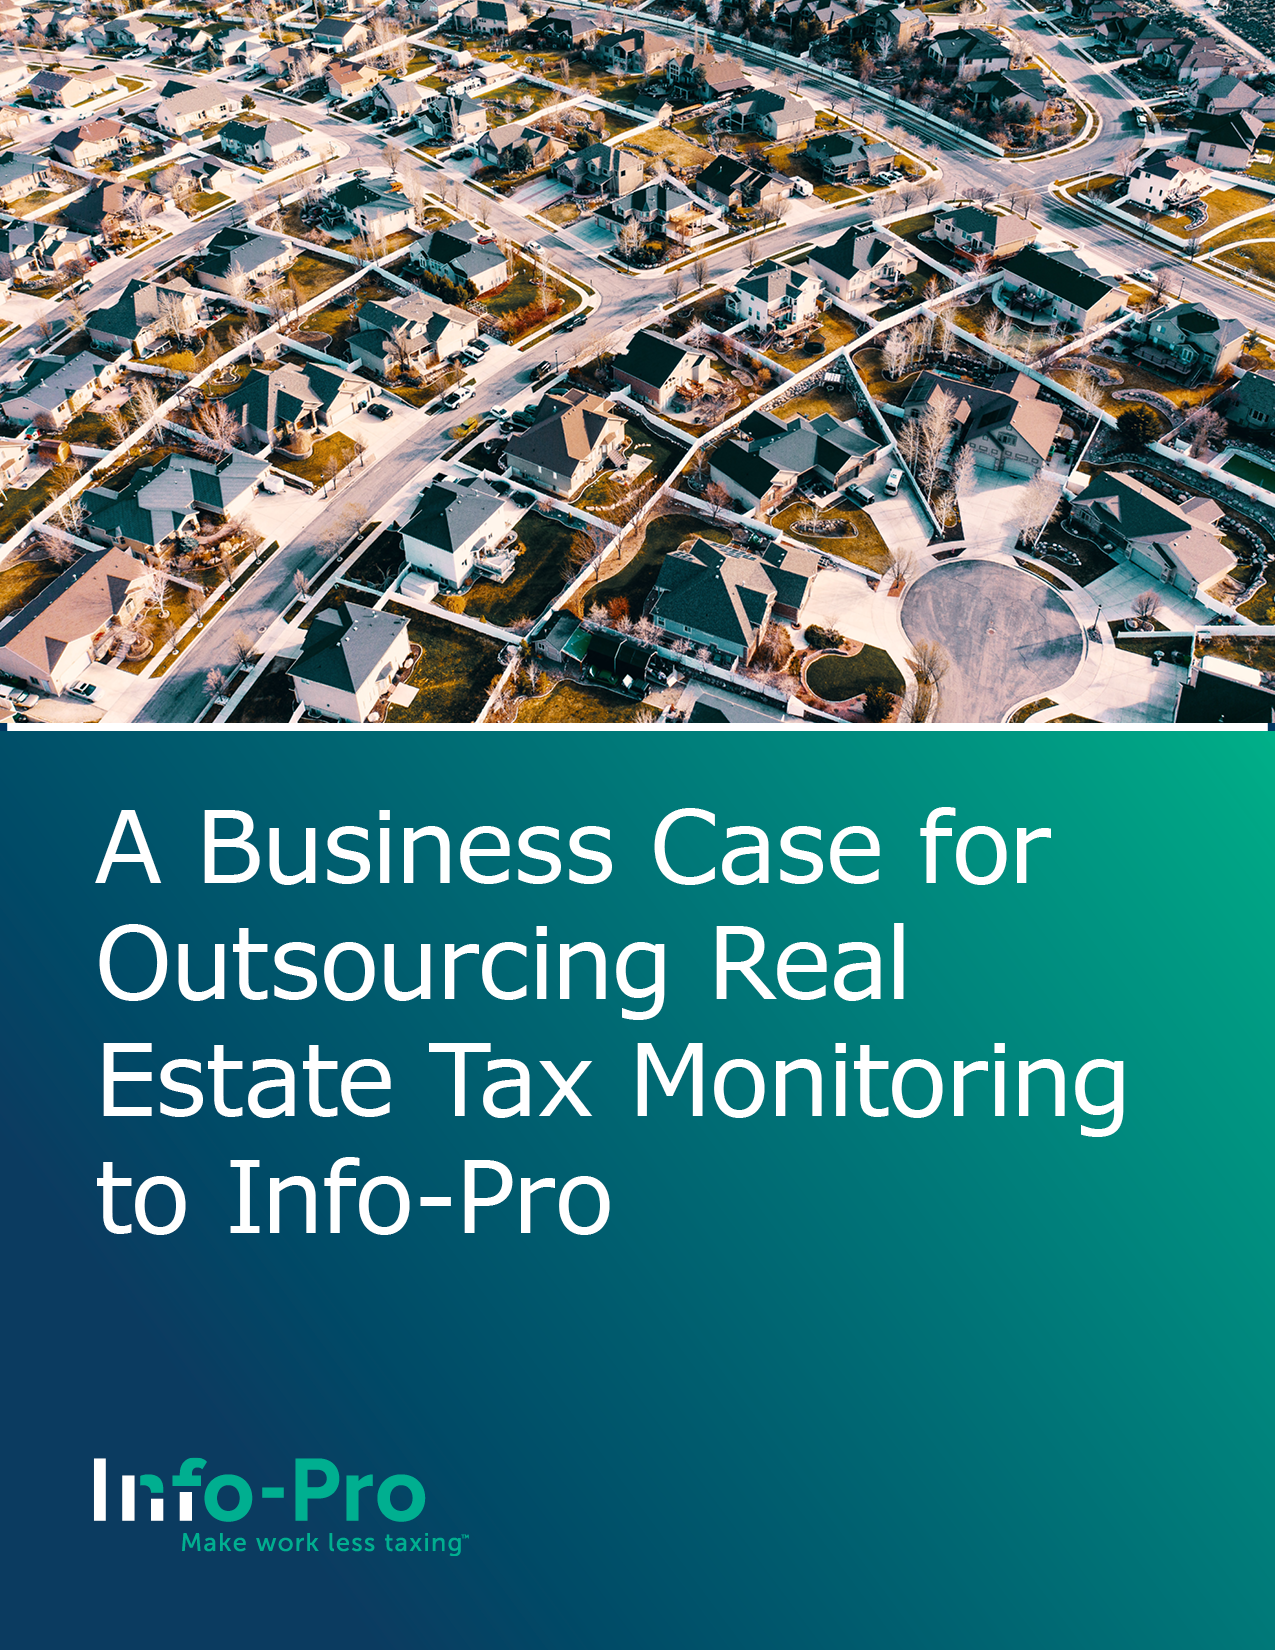 IFP_Ebook2020_ABusinessCaseForOutsourcing_Cover